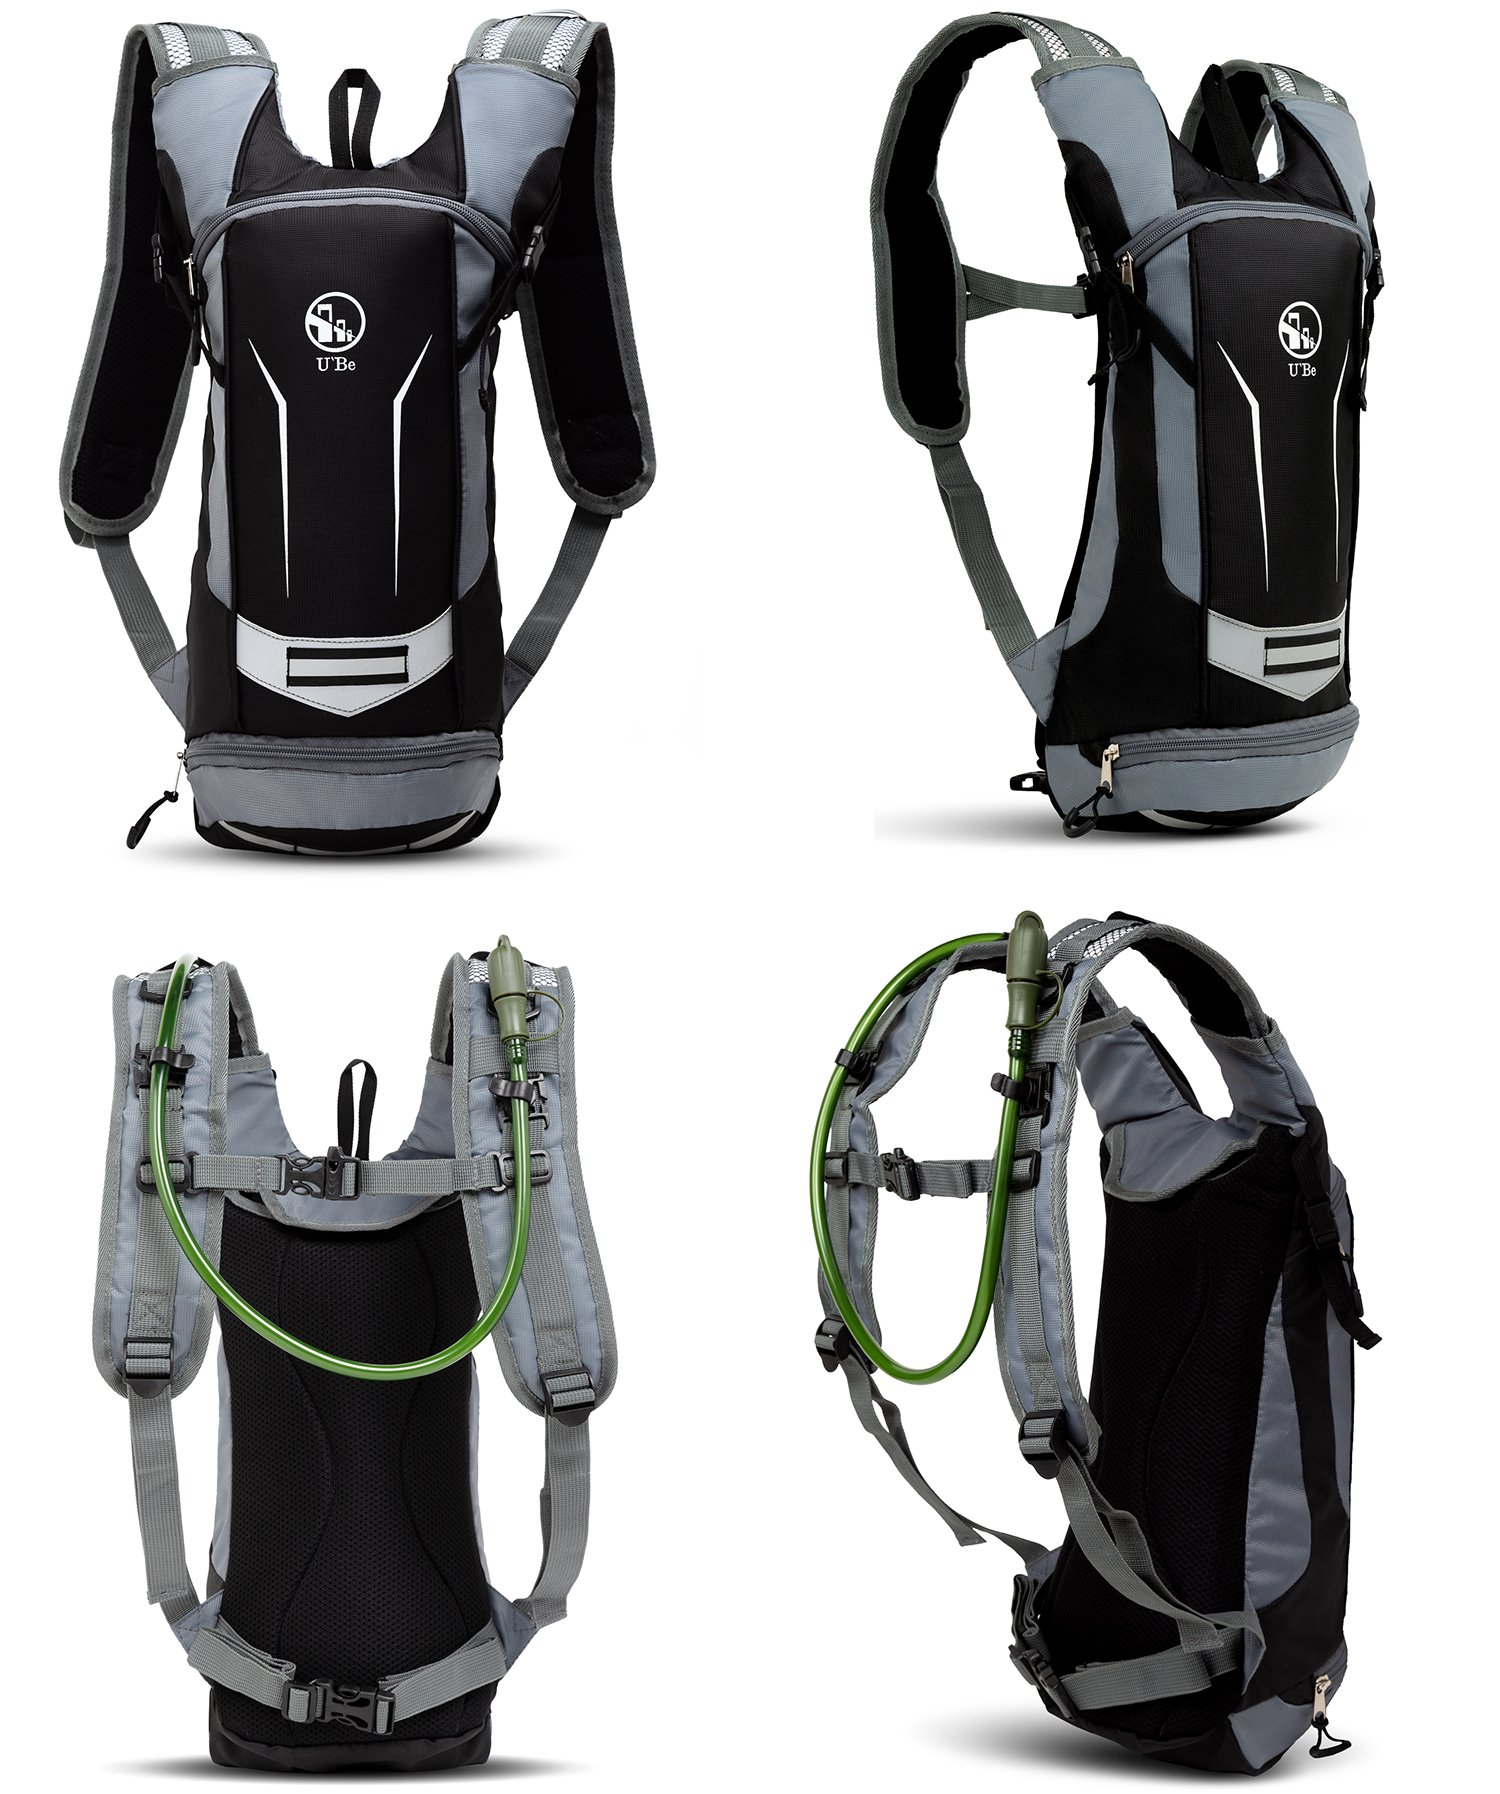 U`Be Hydration Pack - Hydration Backpack - Camel Pack Water Backpack with Insulated 2l Bladder for Women Men Kids Backpacking - Small Lightweight Water Reservoir for Running Hiking Cycling by U`Be (Image #3)